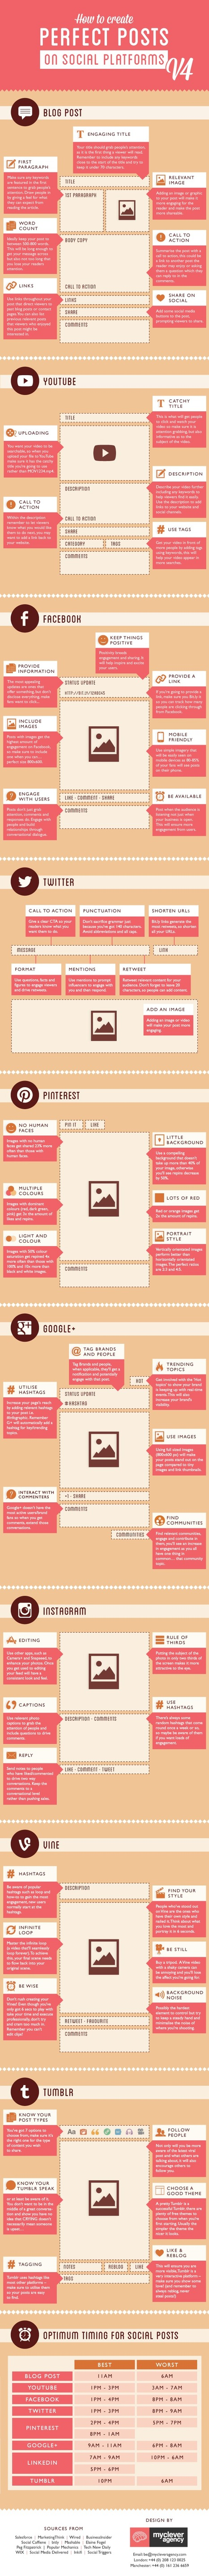 The Art of Creating Perfect Social Media Posts - infographic | Content creation | Scoop.it